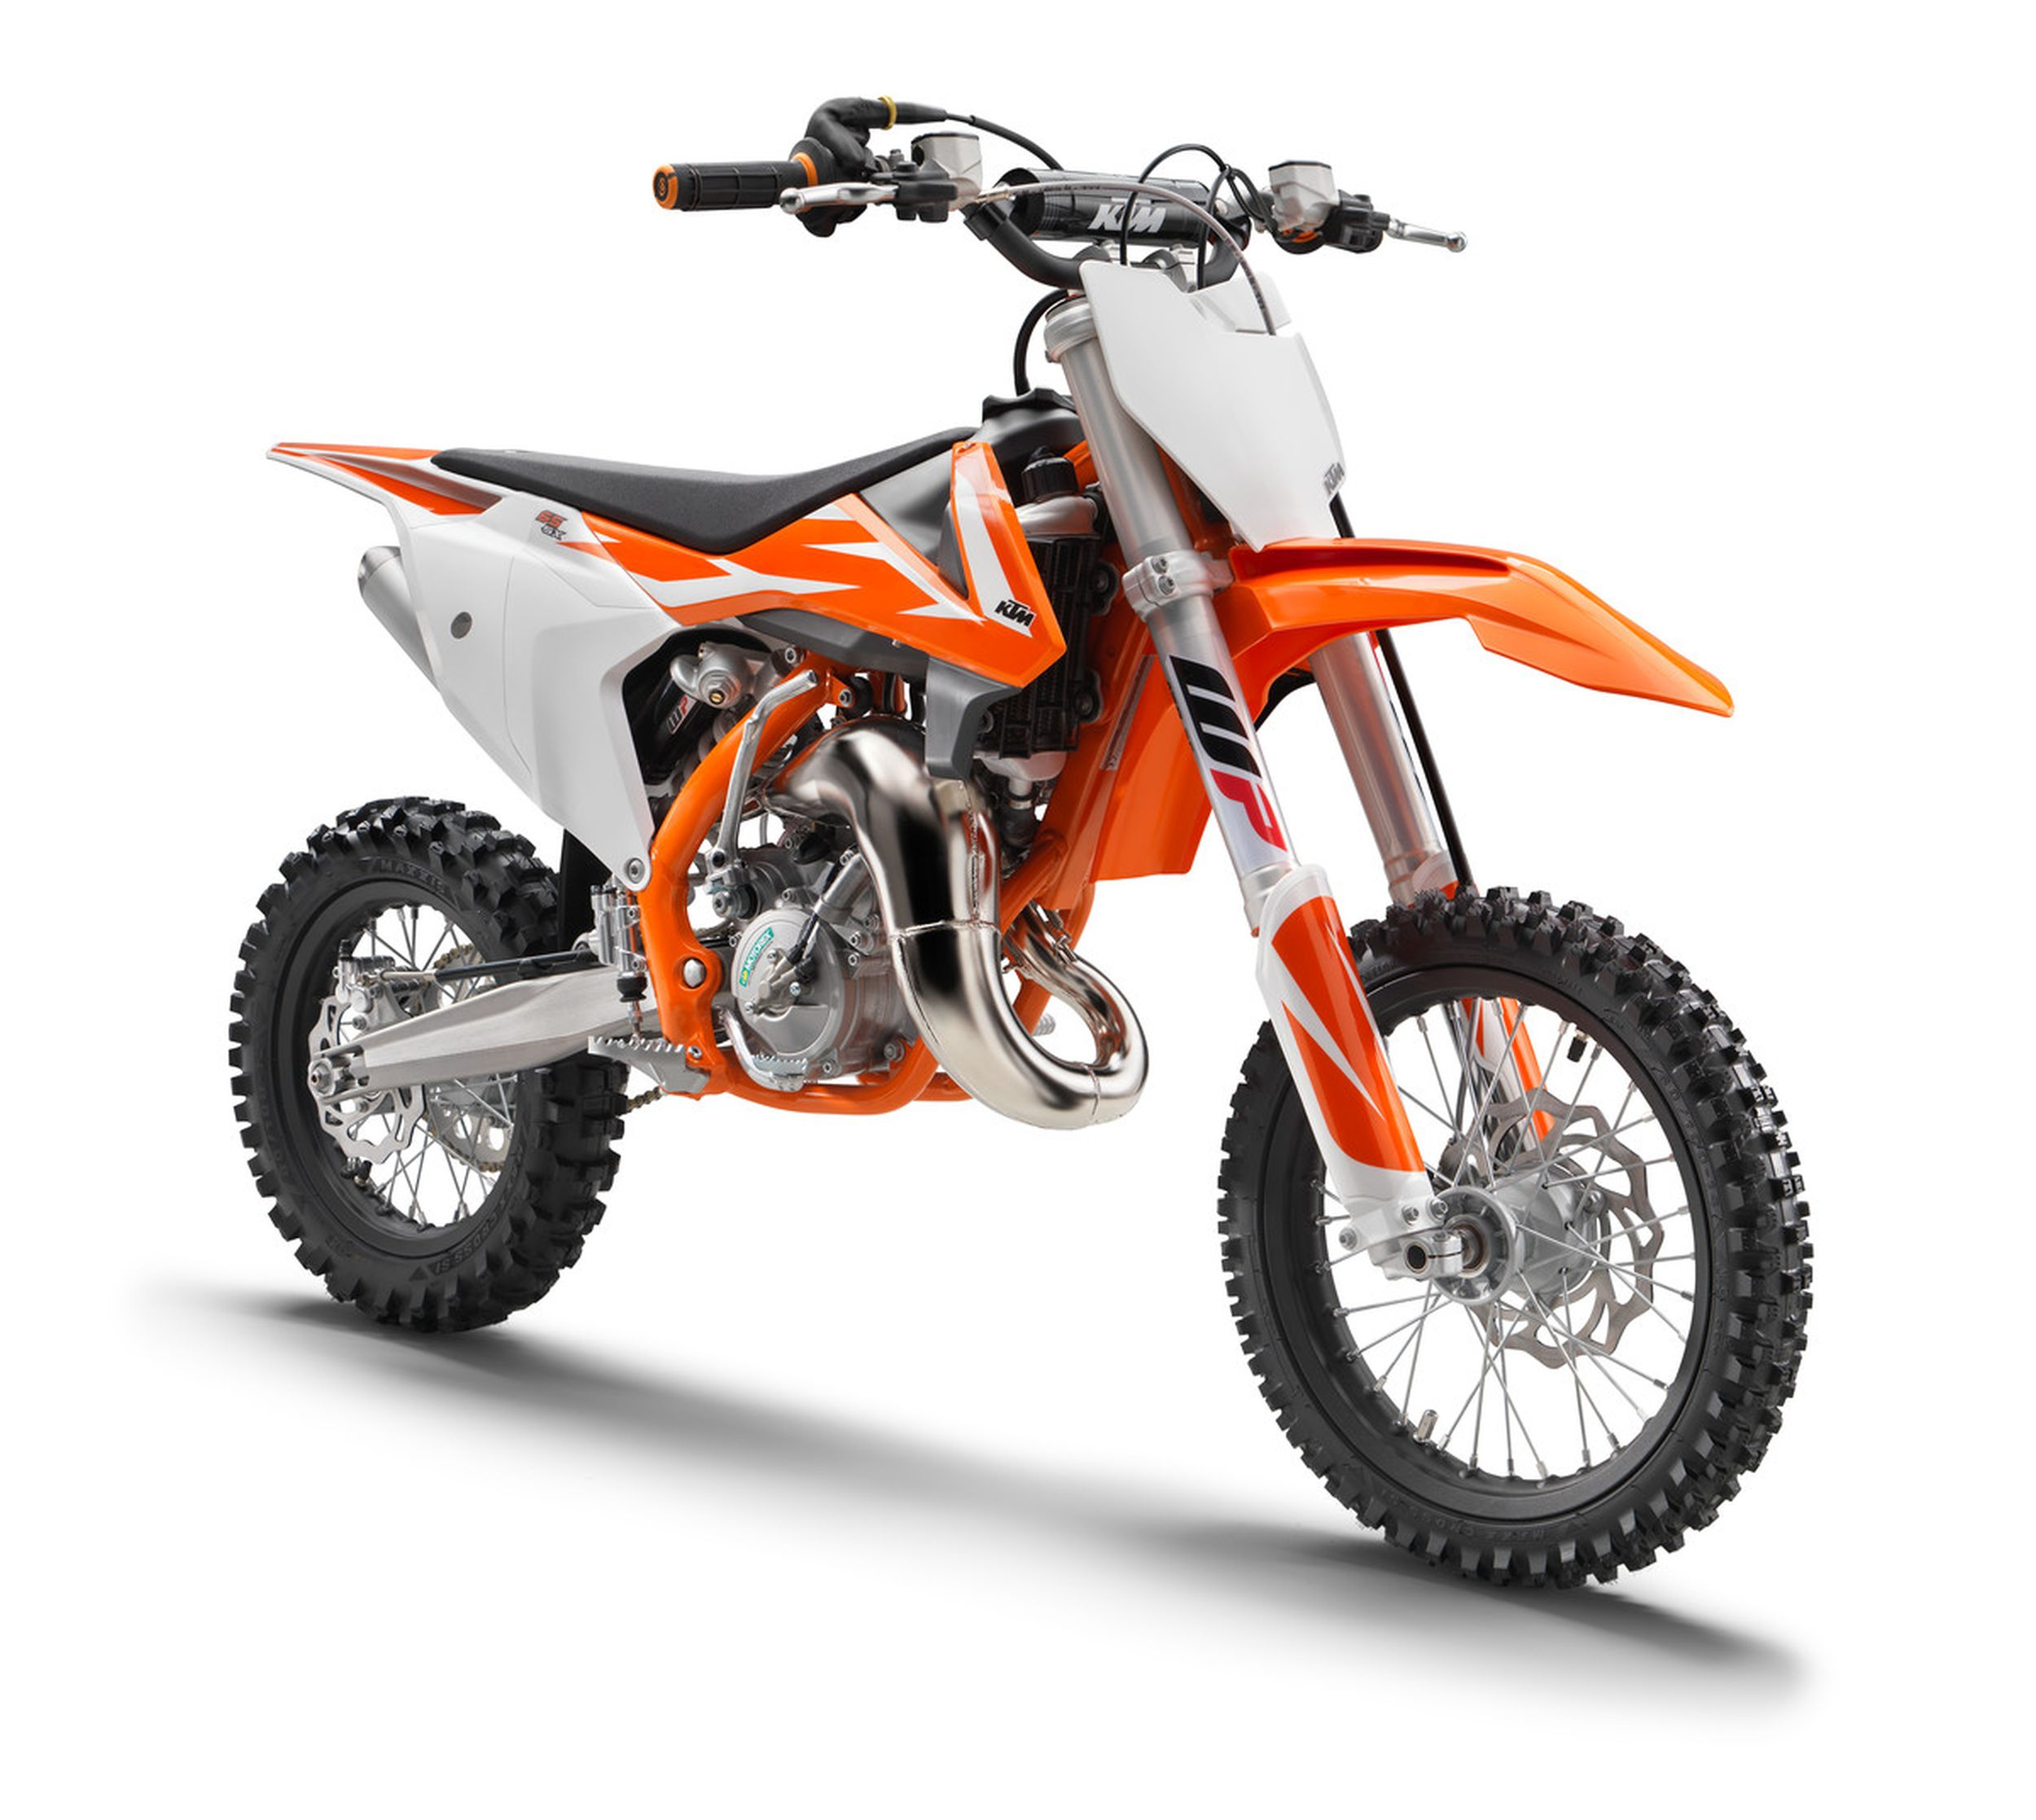 Ktm Enduro R For Sale Australia